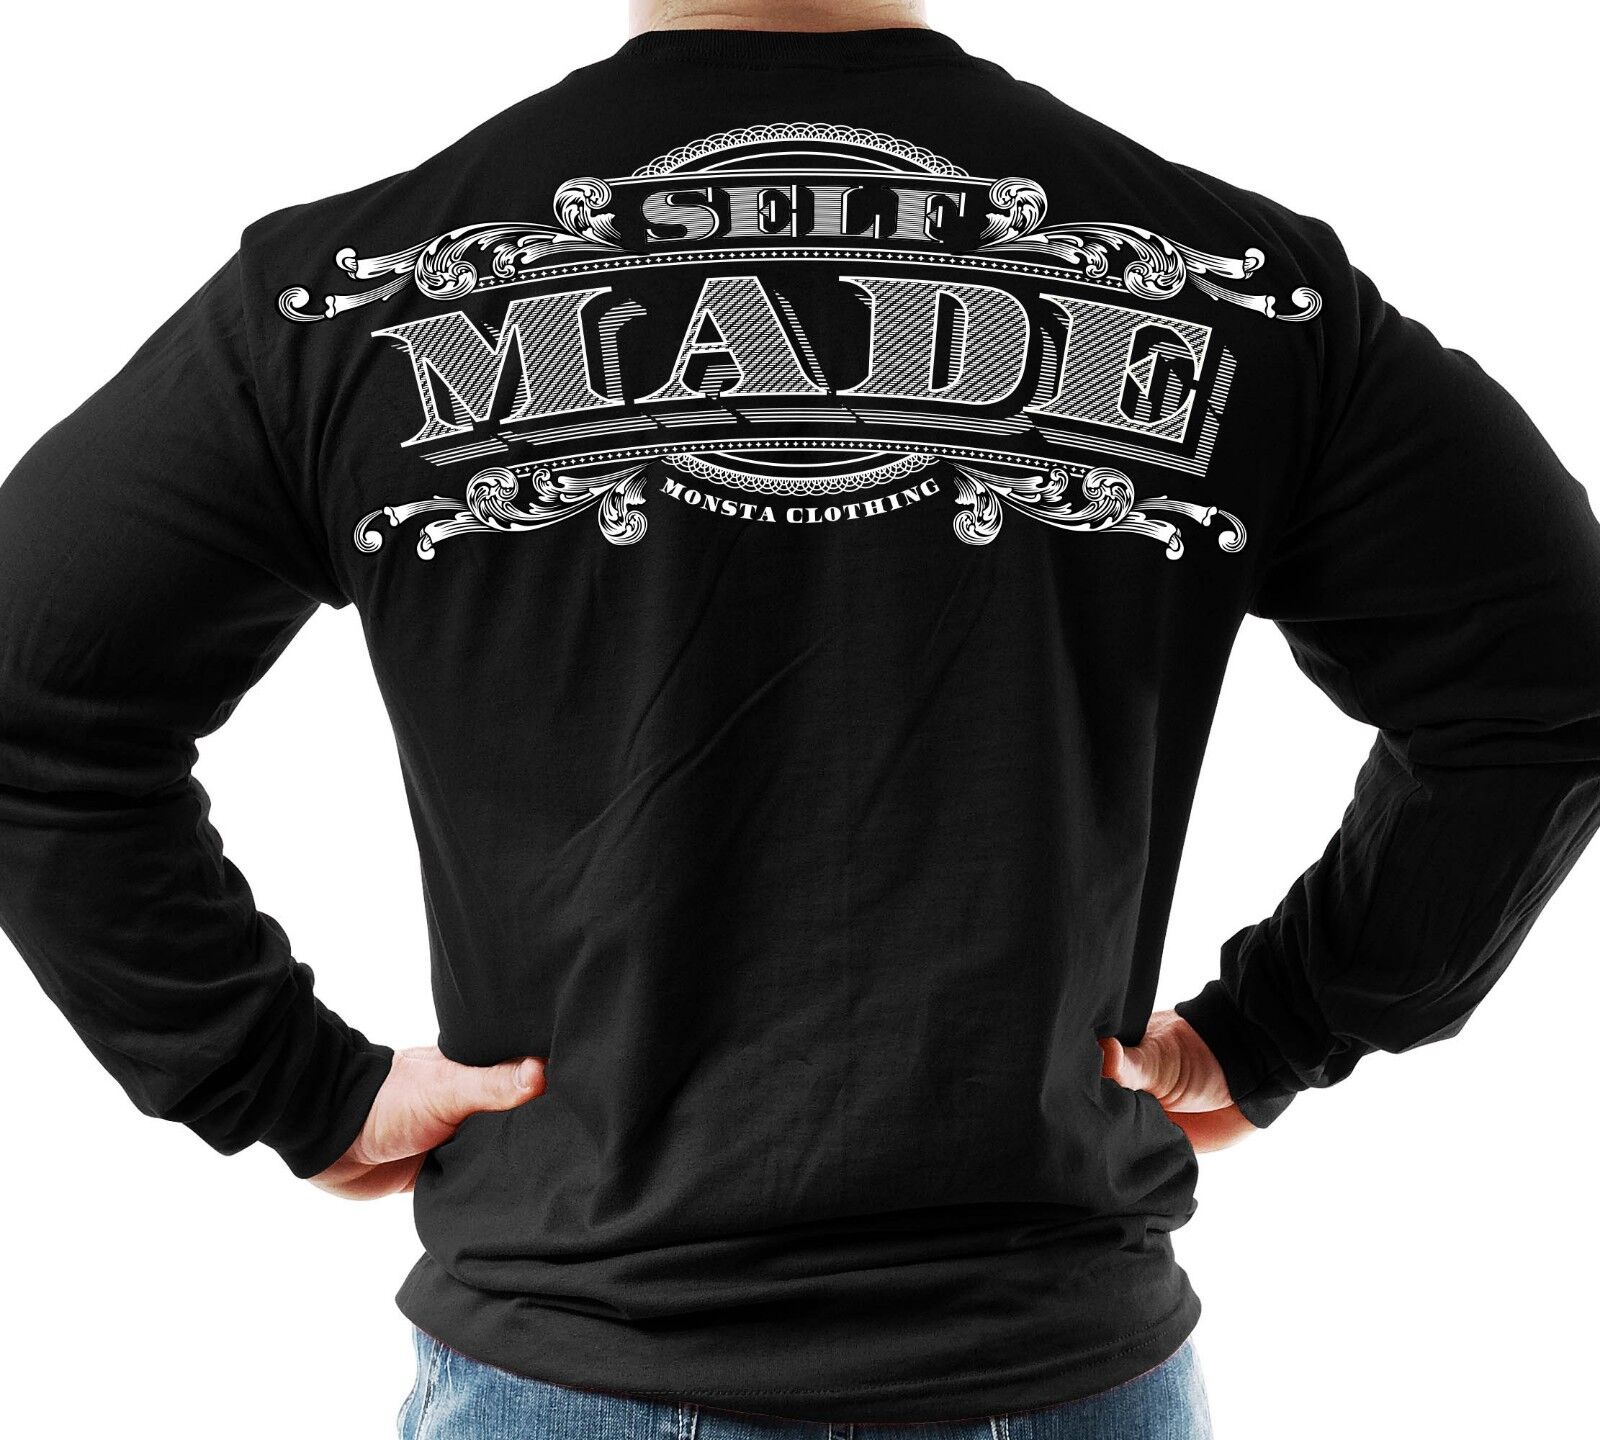 New Men's Monsta Clothing Fitness Gym Longsleeve - Self Made